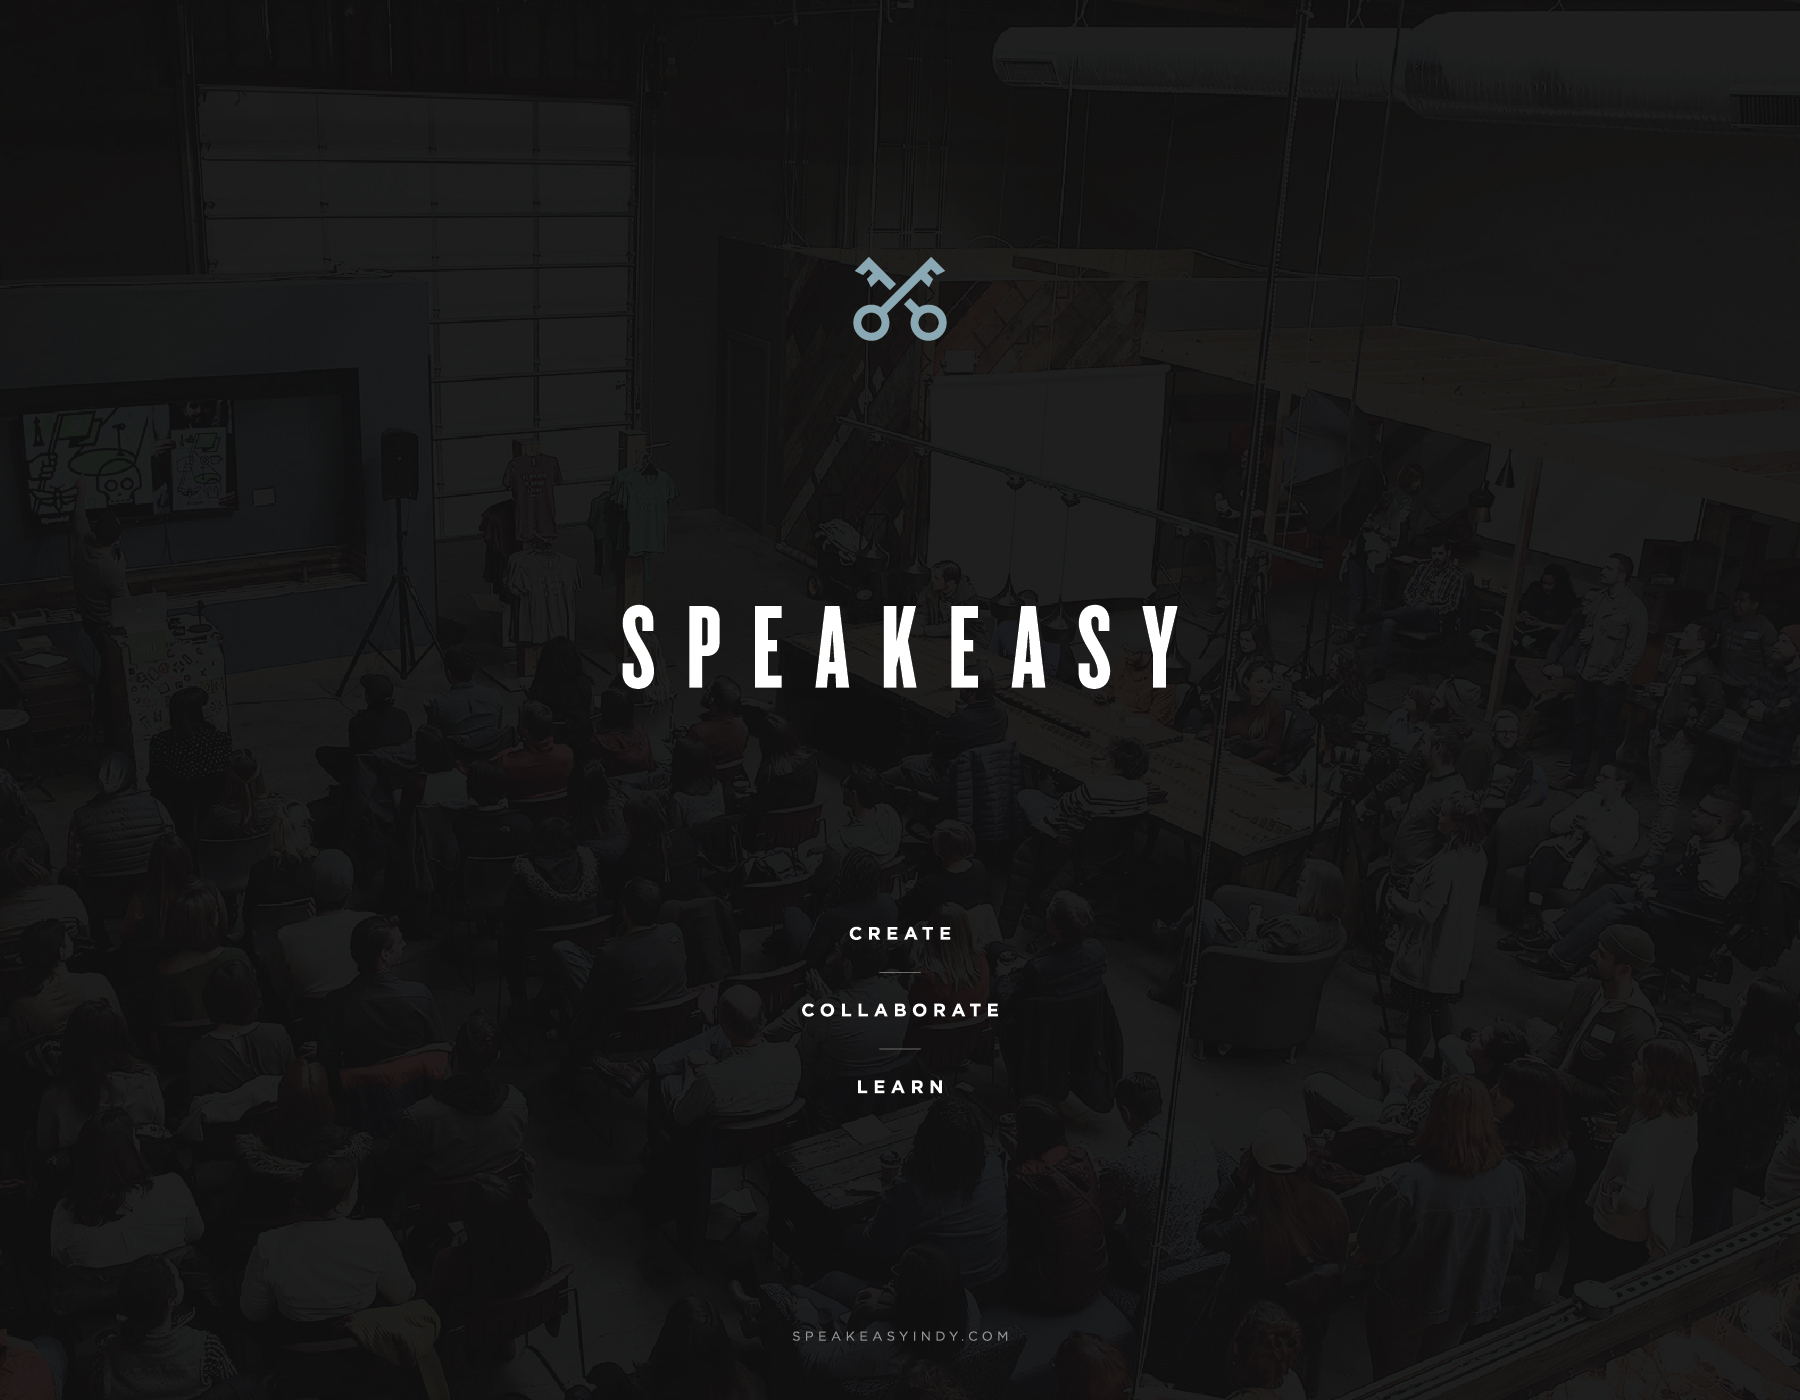 The Speakeasy